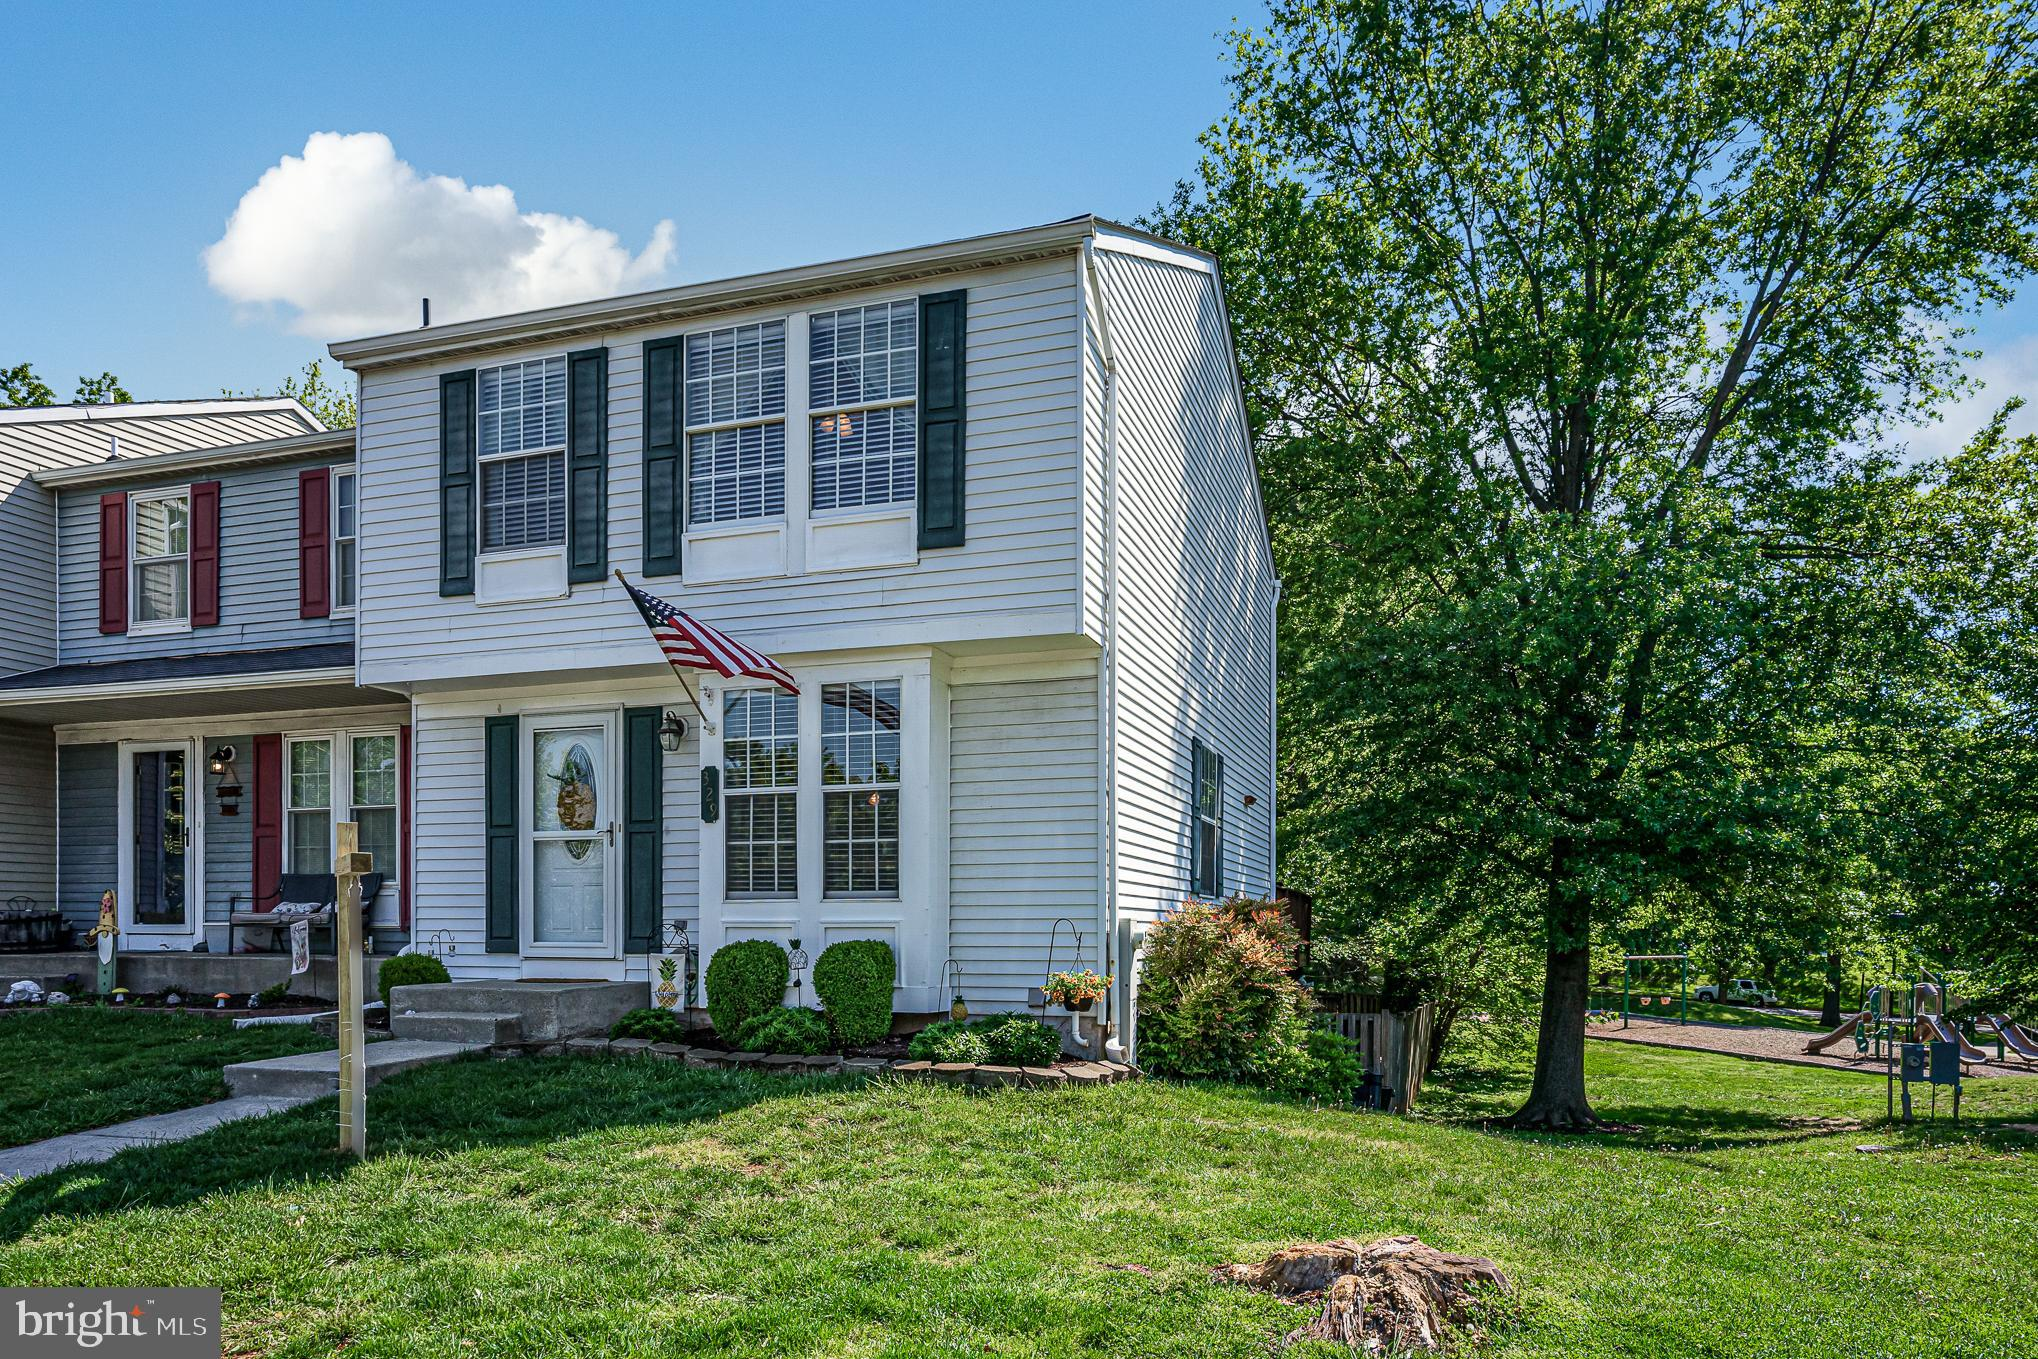 This beautifully updated end of group townhome is move in ready for you and your growing family!!  If you have been looking in this neighborhood, you'll notice that this house has the best parts of every house including a fireplace, optional 4th bedroom in the basement, 2 full and one half baths, end of group, a walk out basement, fenced in yard, community playground right out back, close additional parking, a new roof granite countertops, new appliances, and fresh paint throughout!!!   We expect this house to sell quickly so contact the listing agent to reserve a time to take a look or come to an open house.